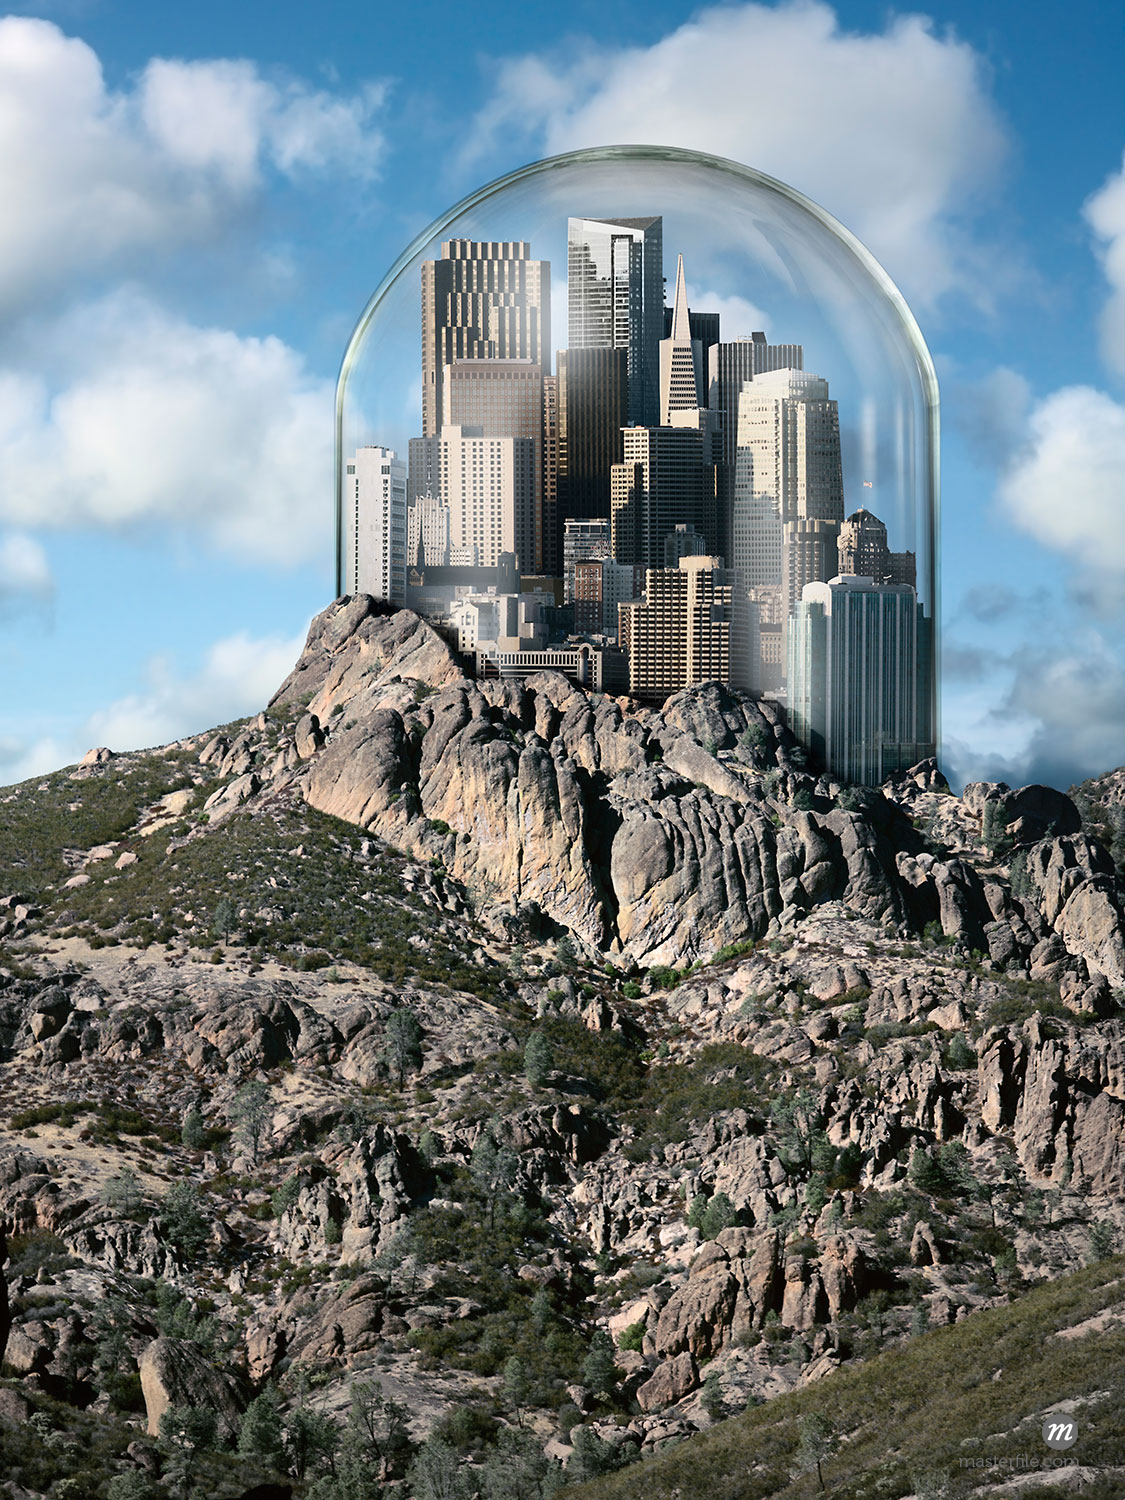 Glass Dome over City on top of a Hill  © Marc Simon / Masterfile